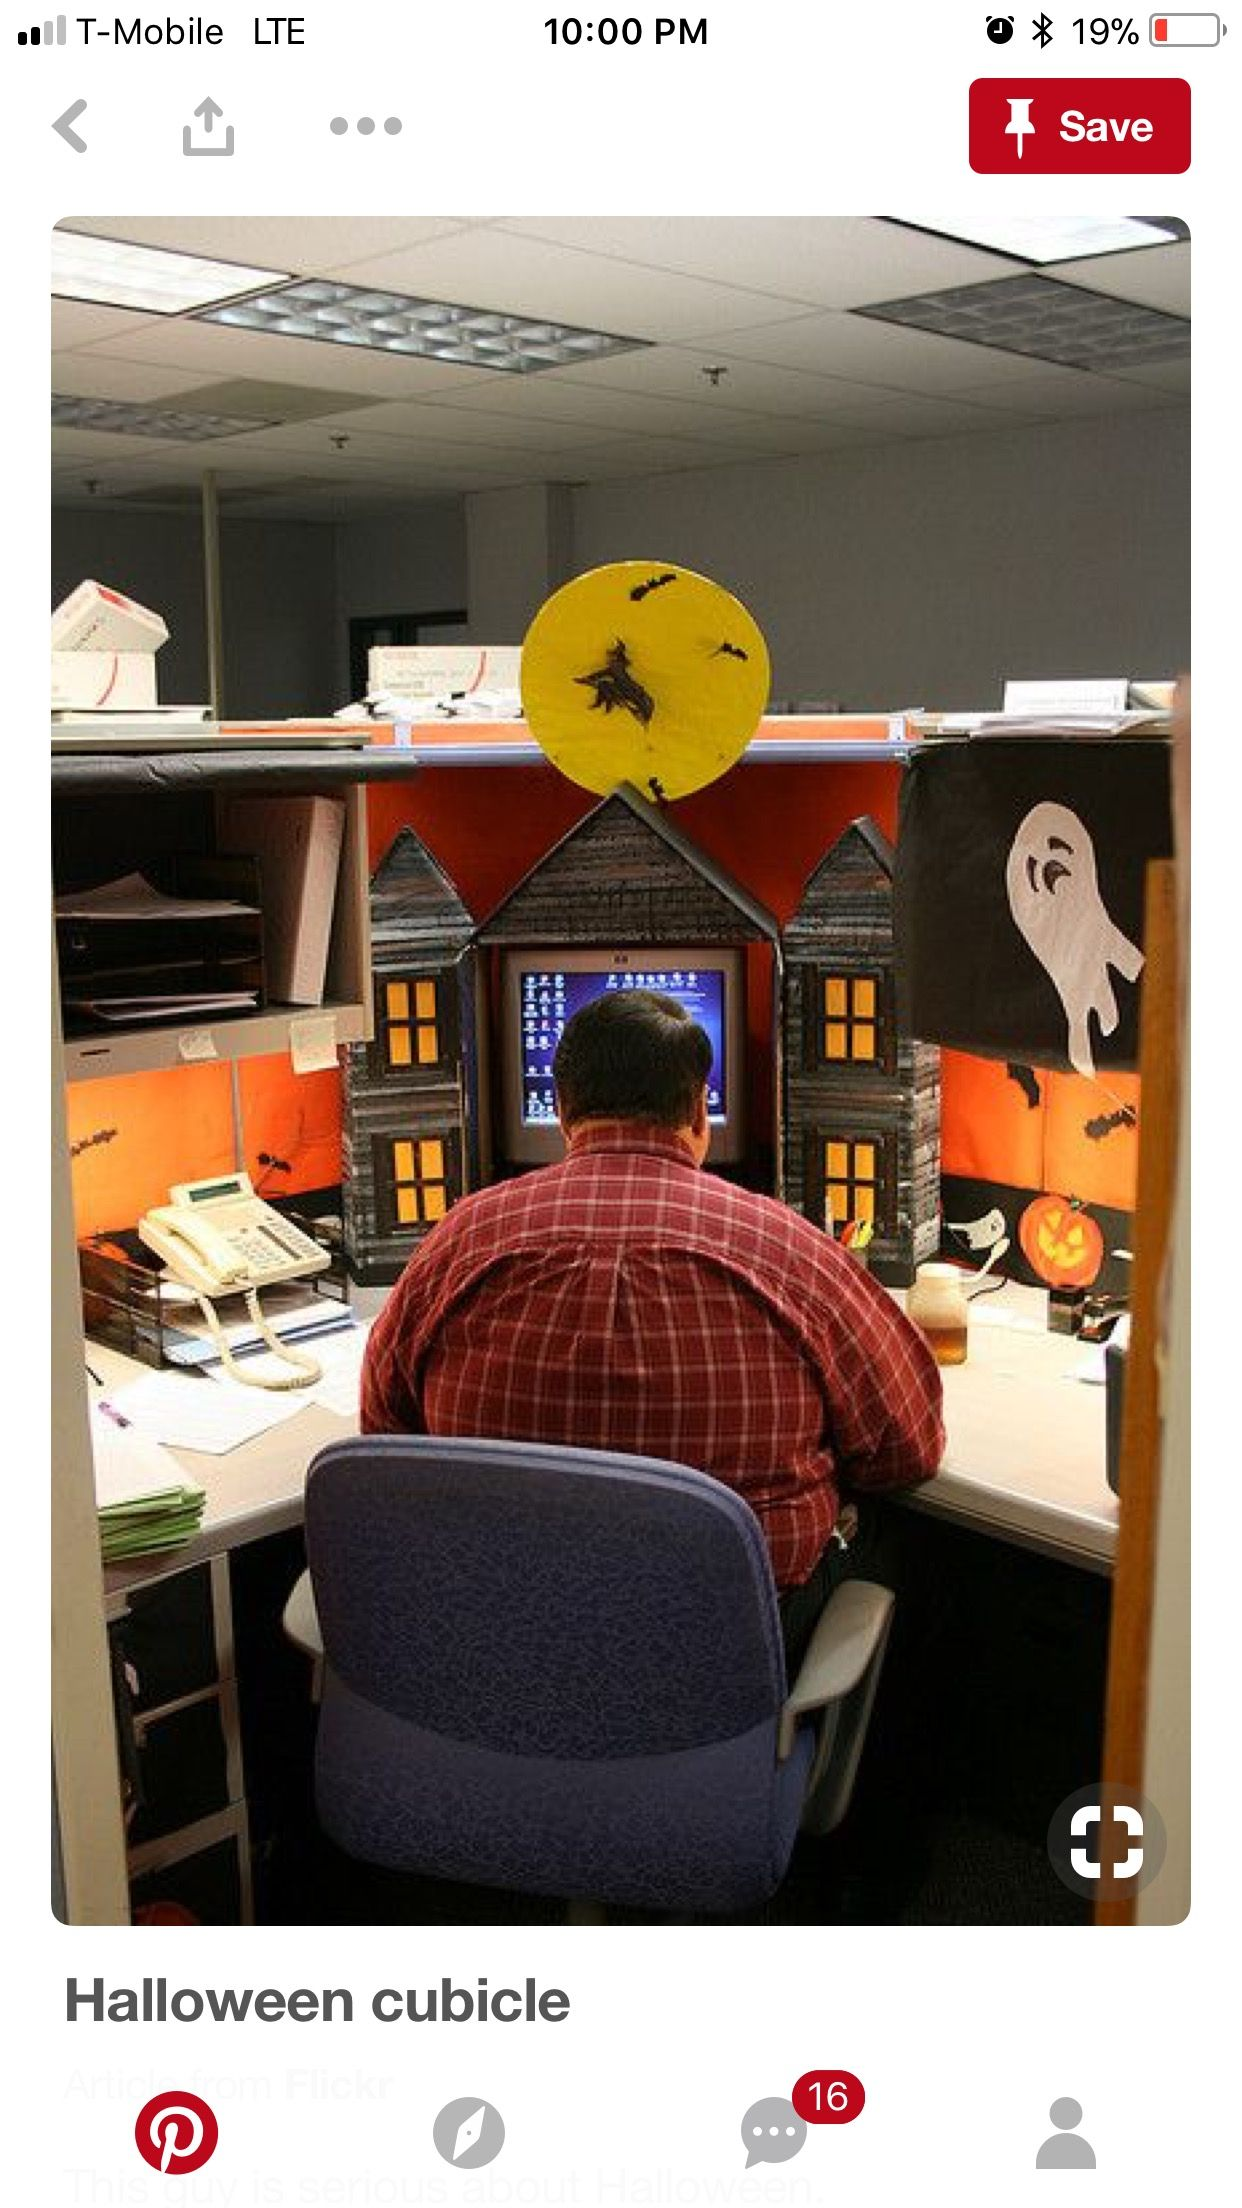 Pin by Tulayha Johnson on Halloween makeup Pinterest Halloween - Cubicle Halloween Decorations